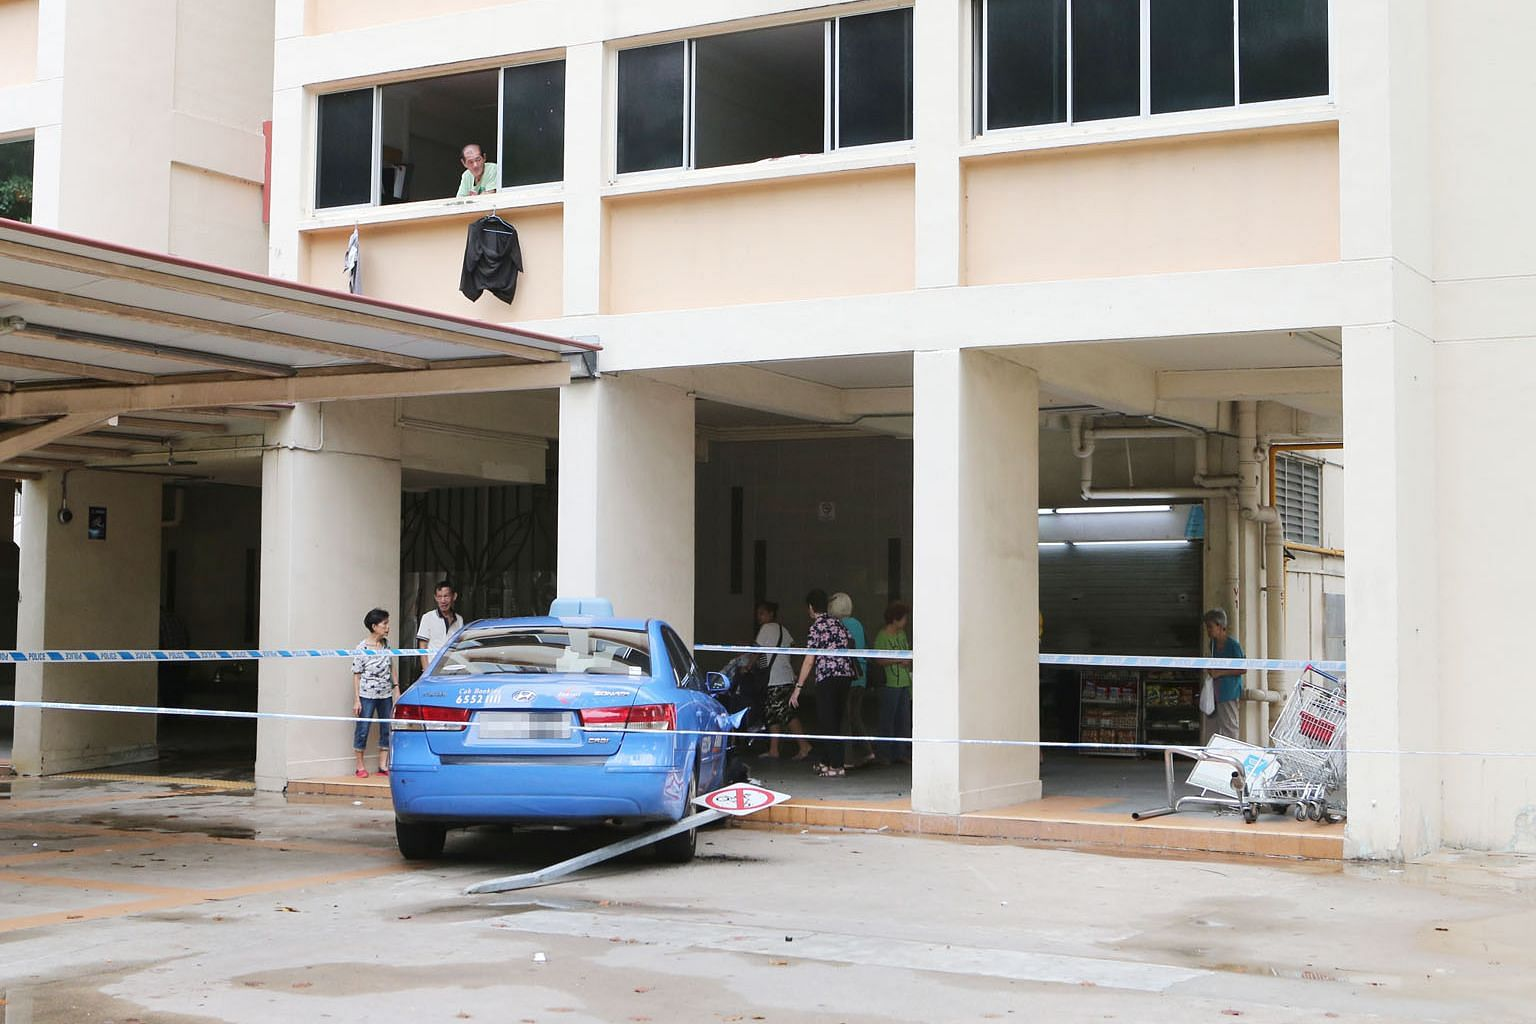 After the collision between the two cabs, the Comfort taxi had mounted the pavement before coming to a stop at the void desk of Block 175 in Toa Payoh Lorong 2. A ComfortDelGro spokesman said there were no passengers on board the Comfort taxi and no